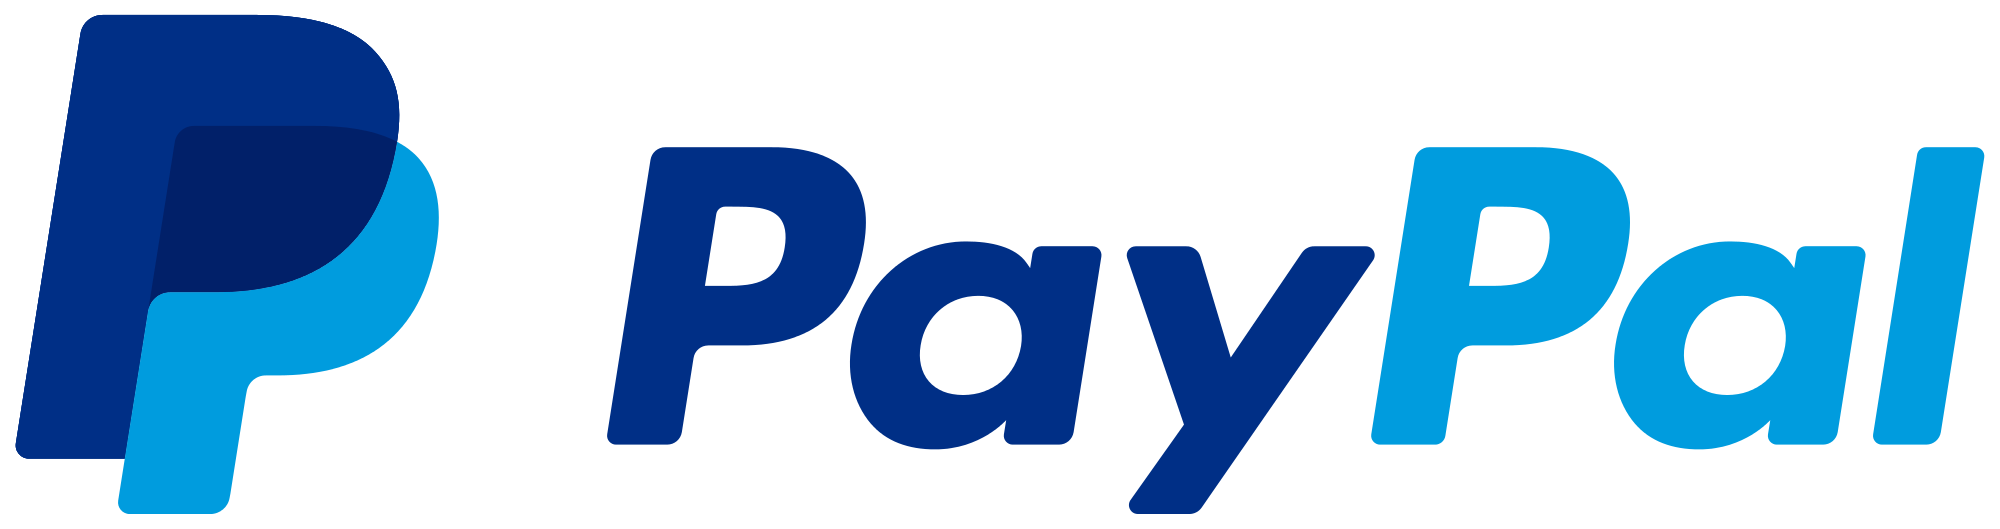 We accept Visa, Mastercard and American Express through PayPal